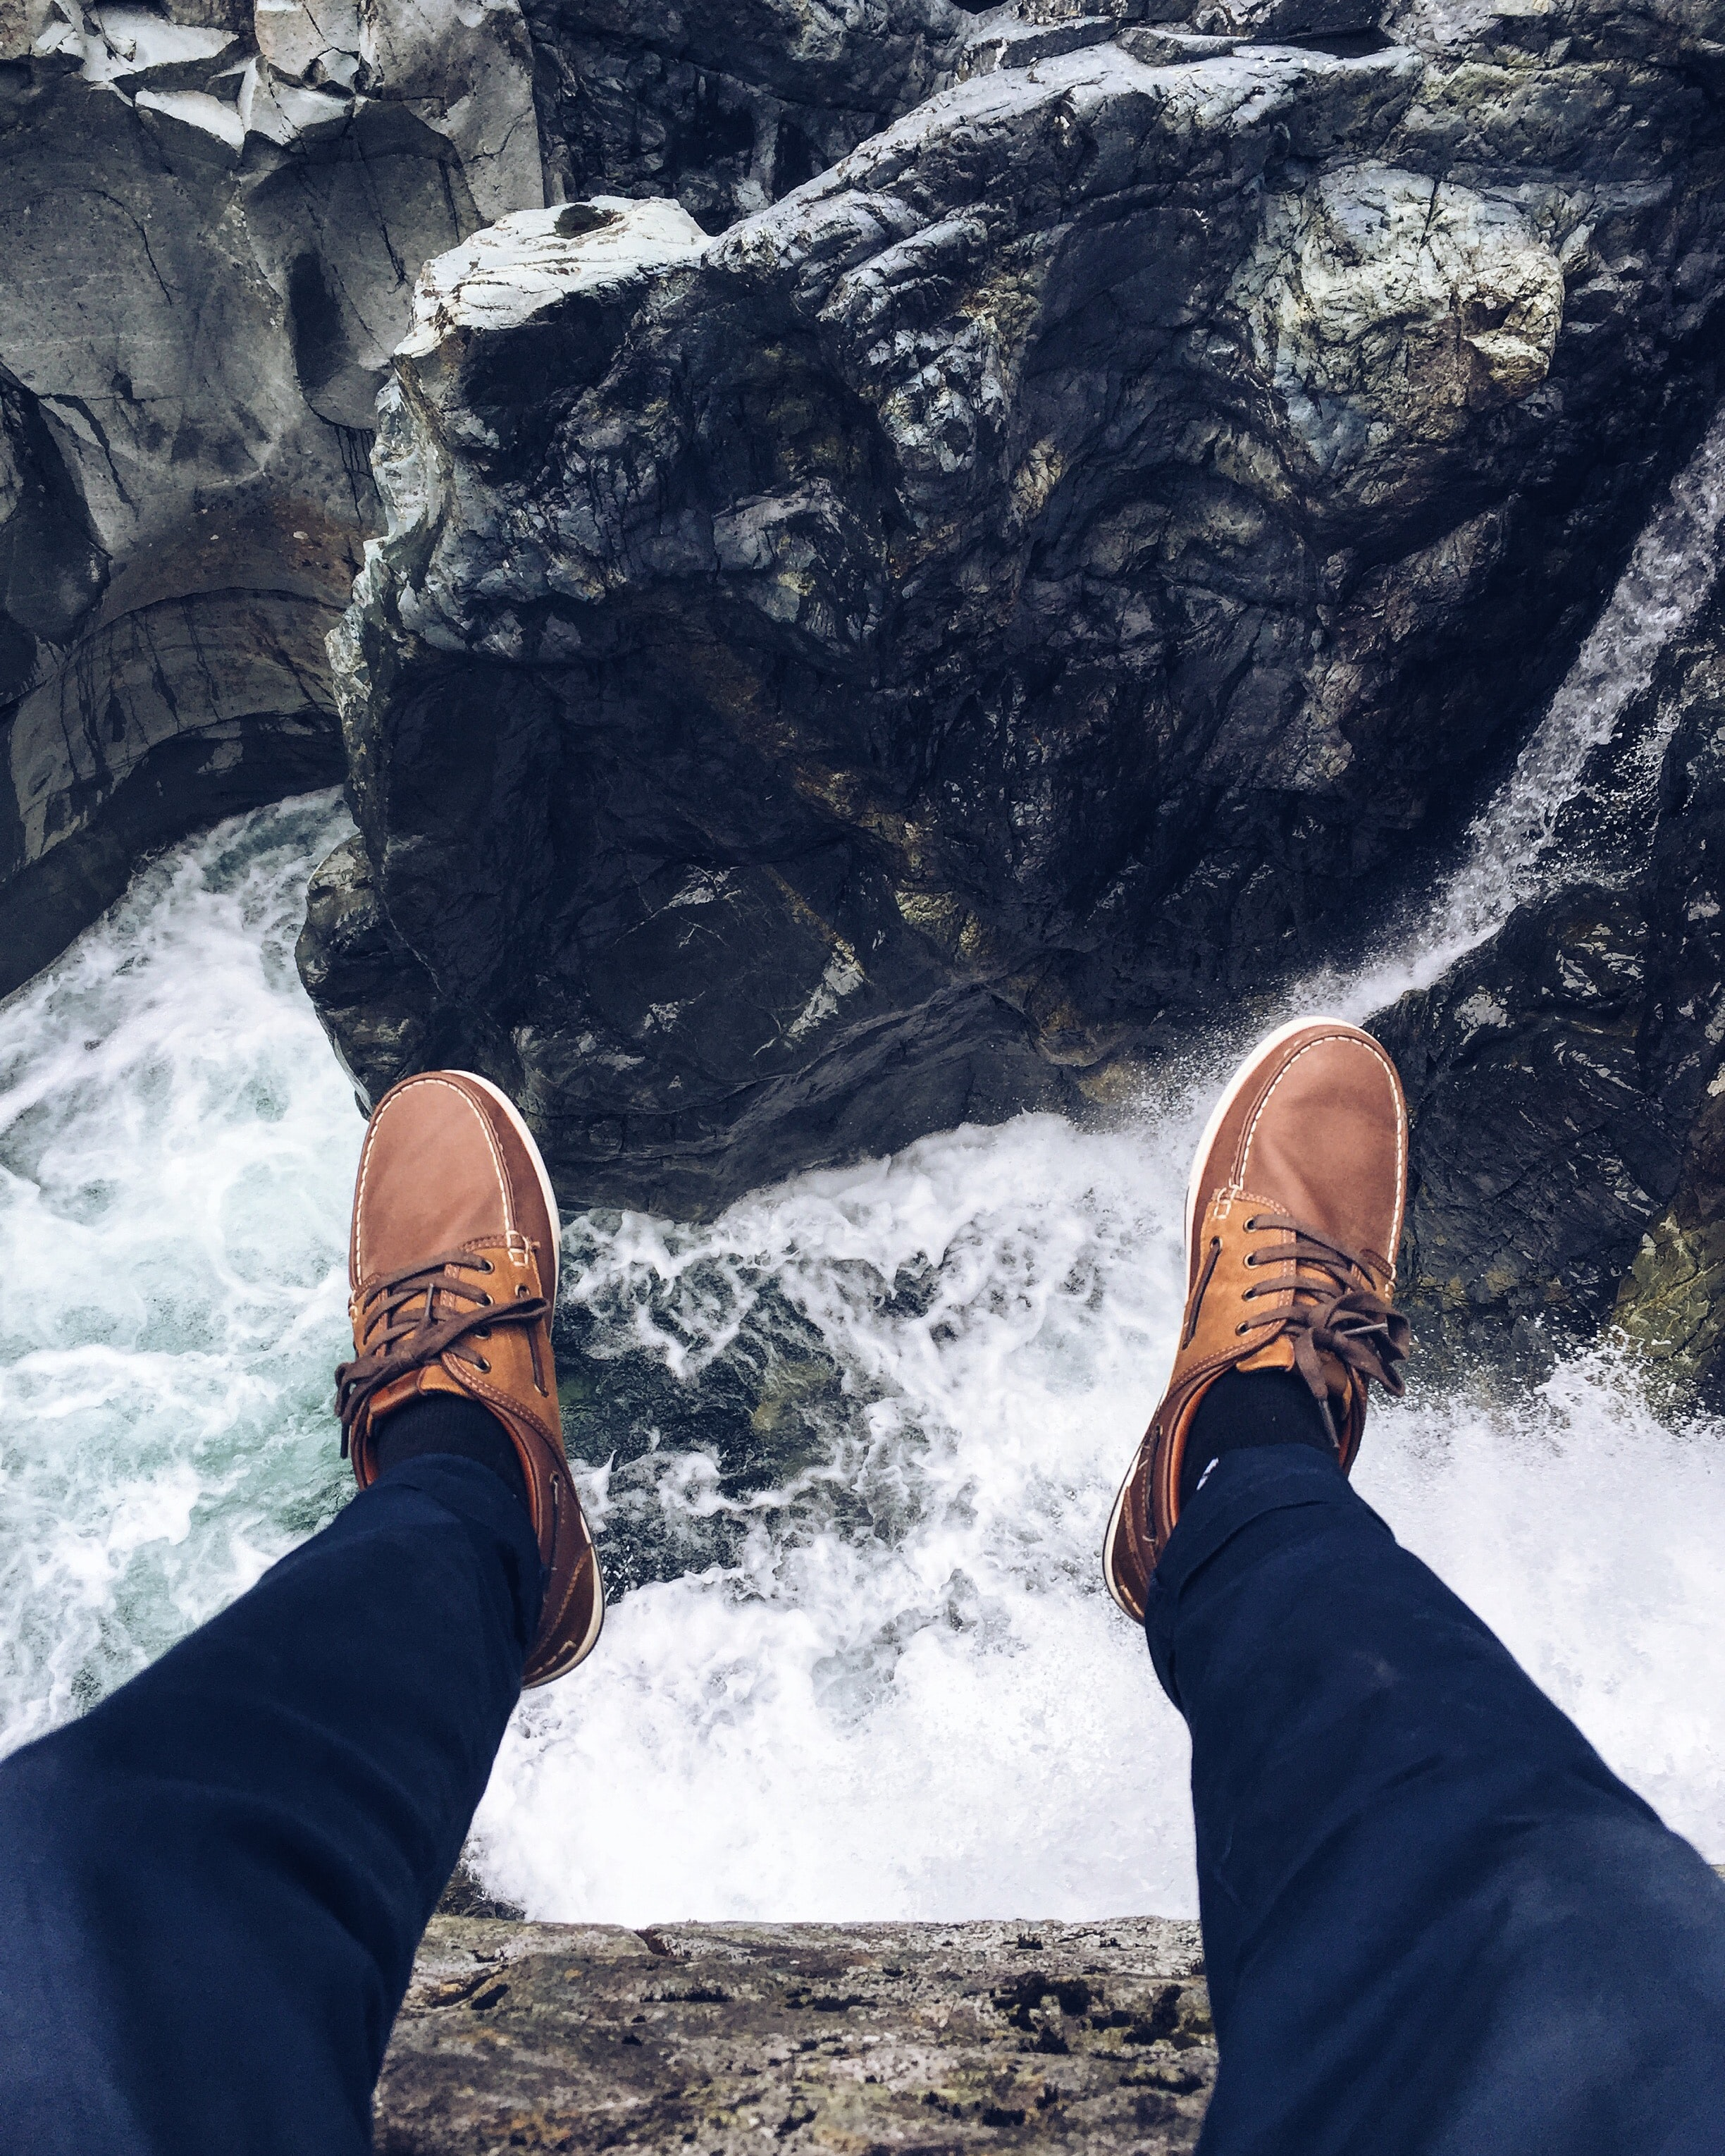 person sitting on edge of rock taking picture of running water